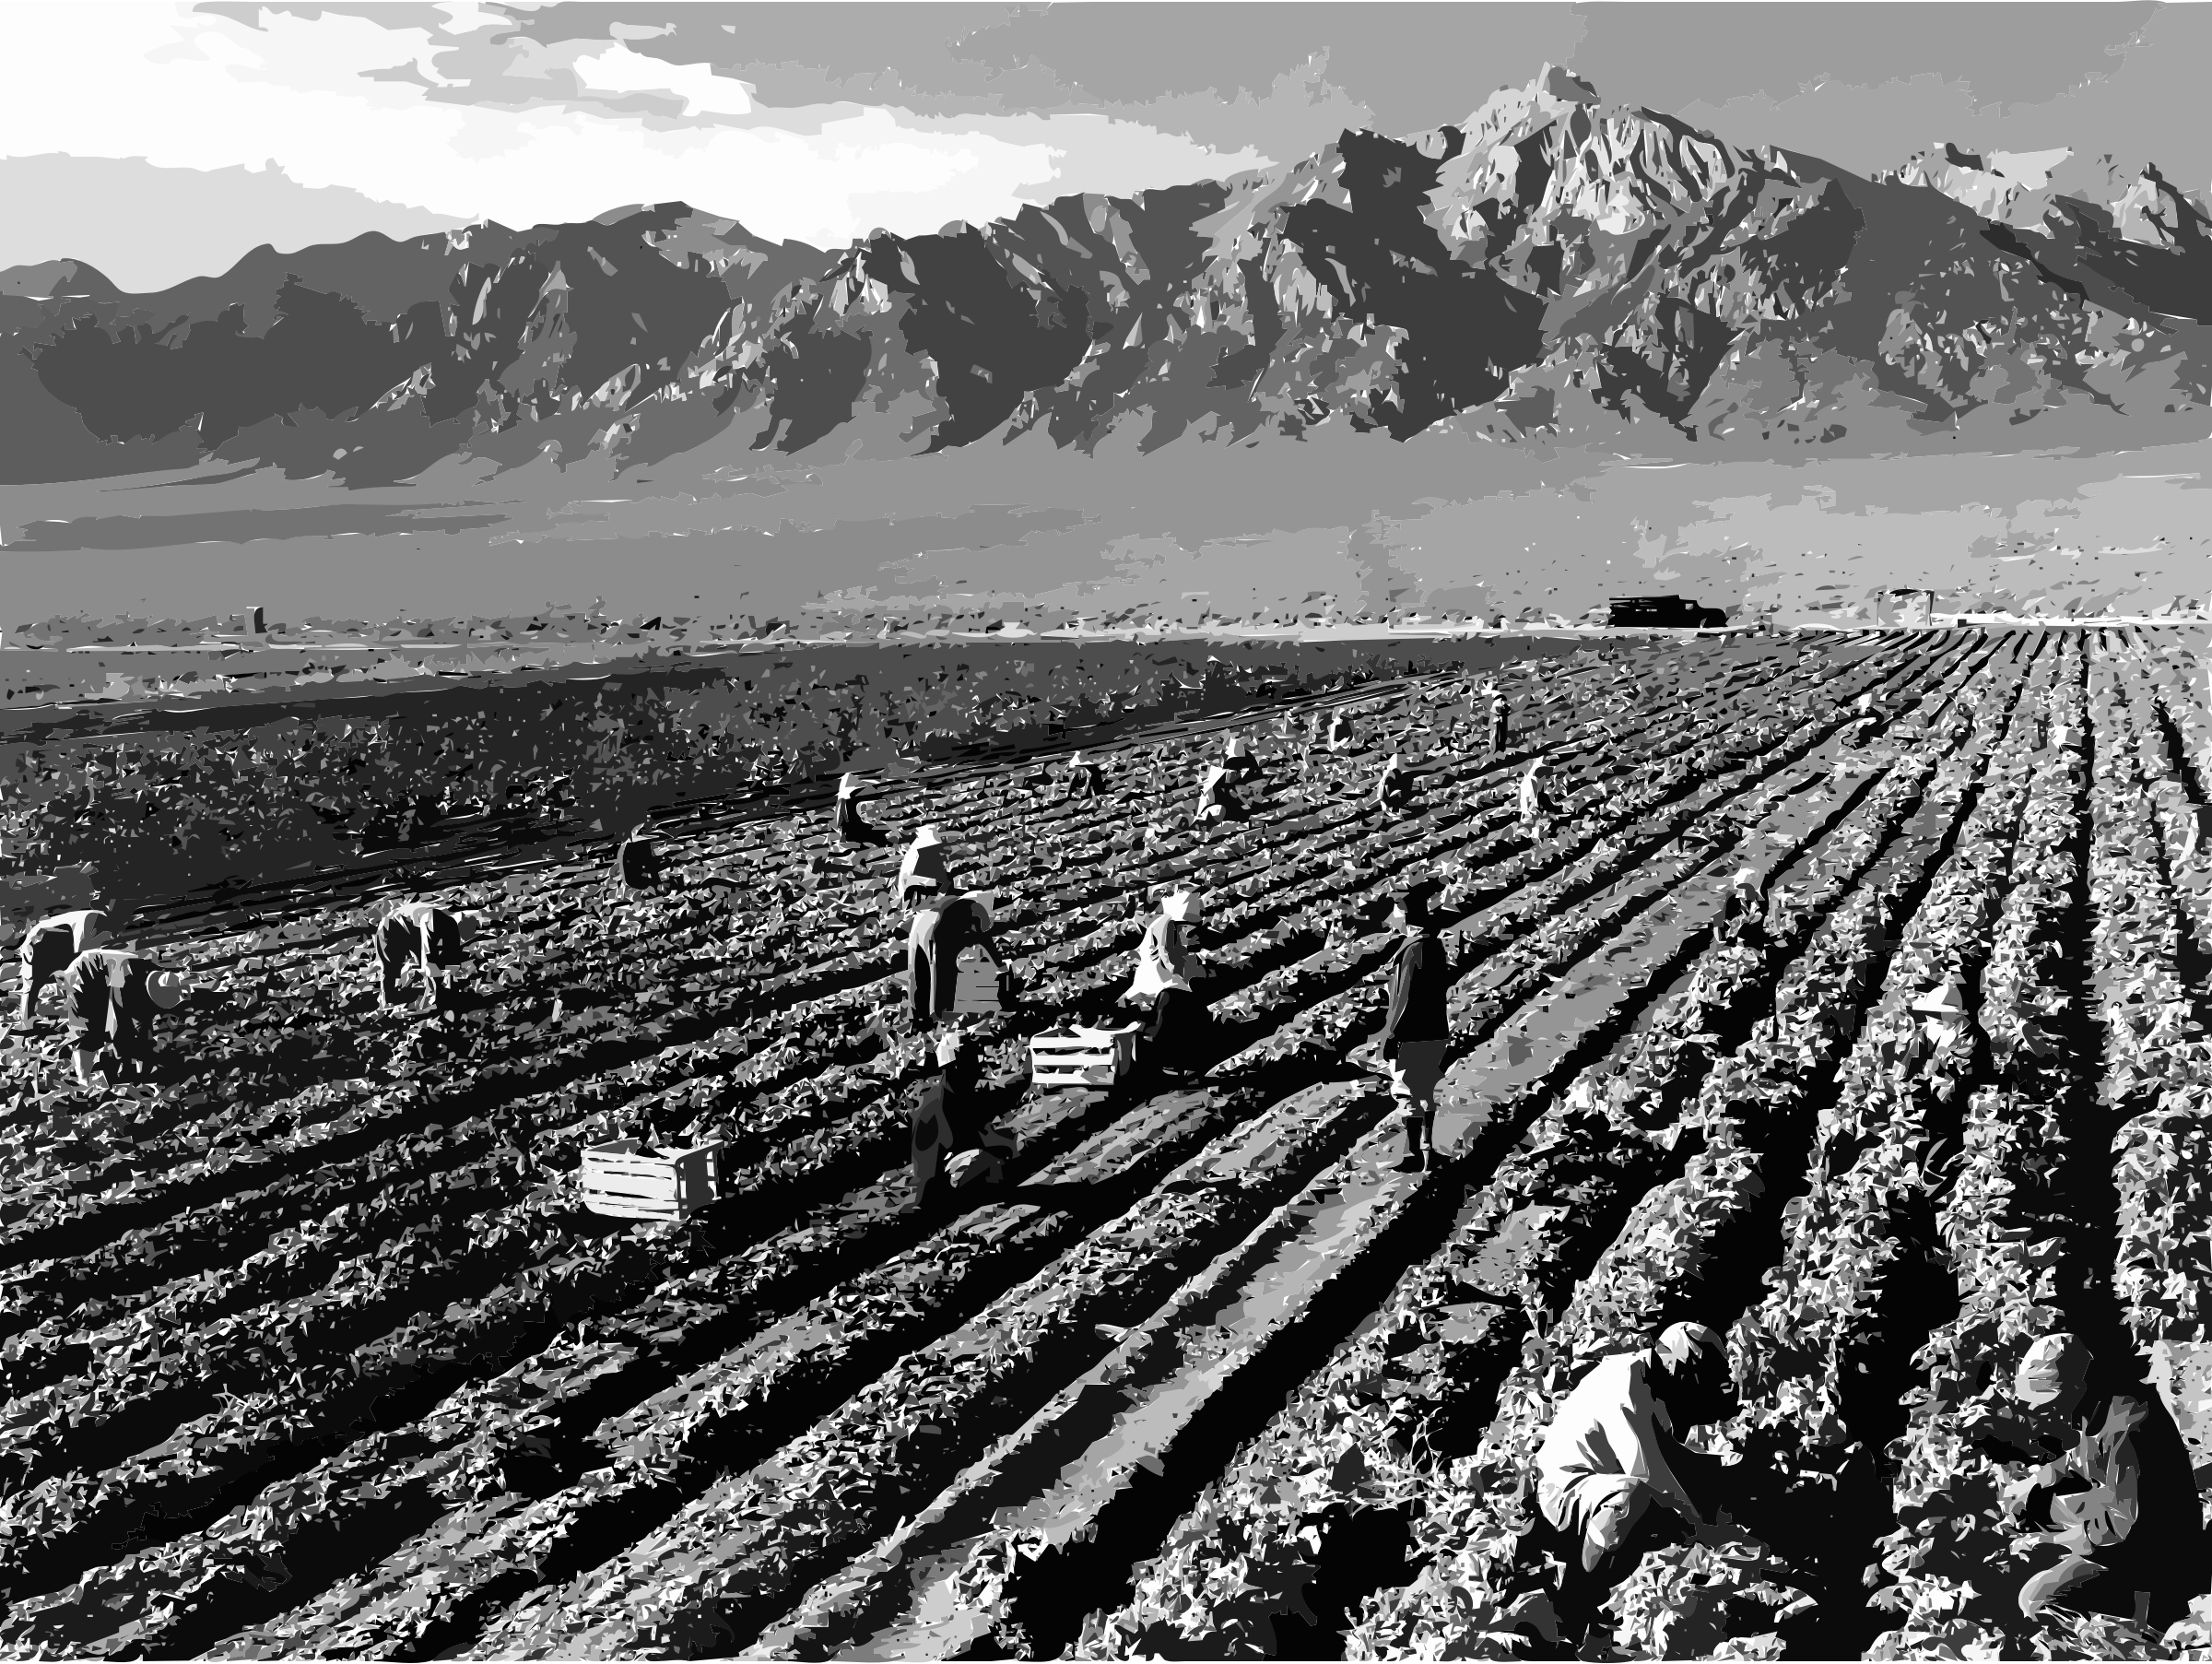 Ansel Adams - Farm workers and Mt. Williamson by 5nbz3a+45jqtl07aorc